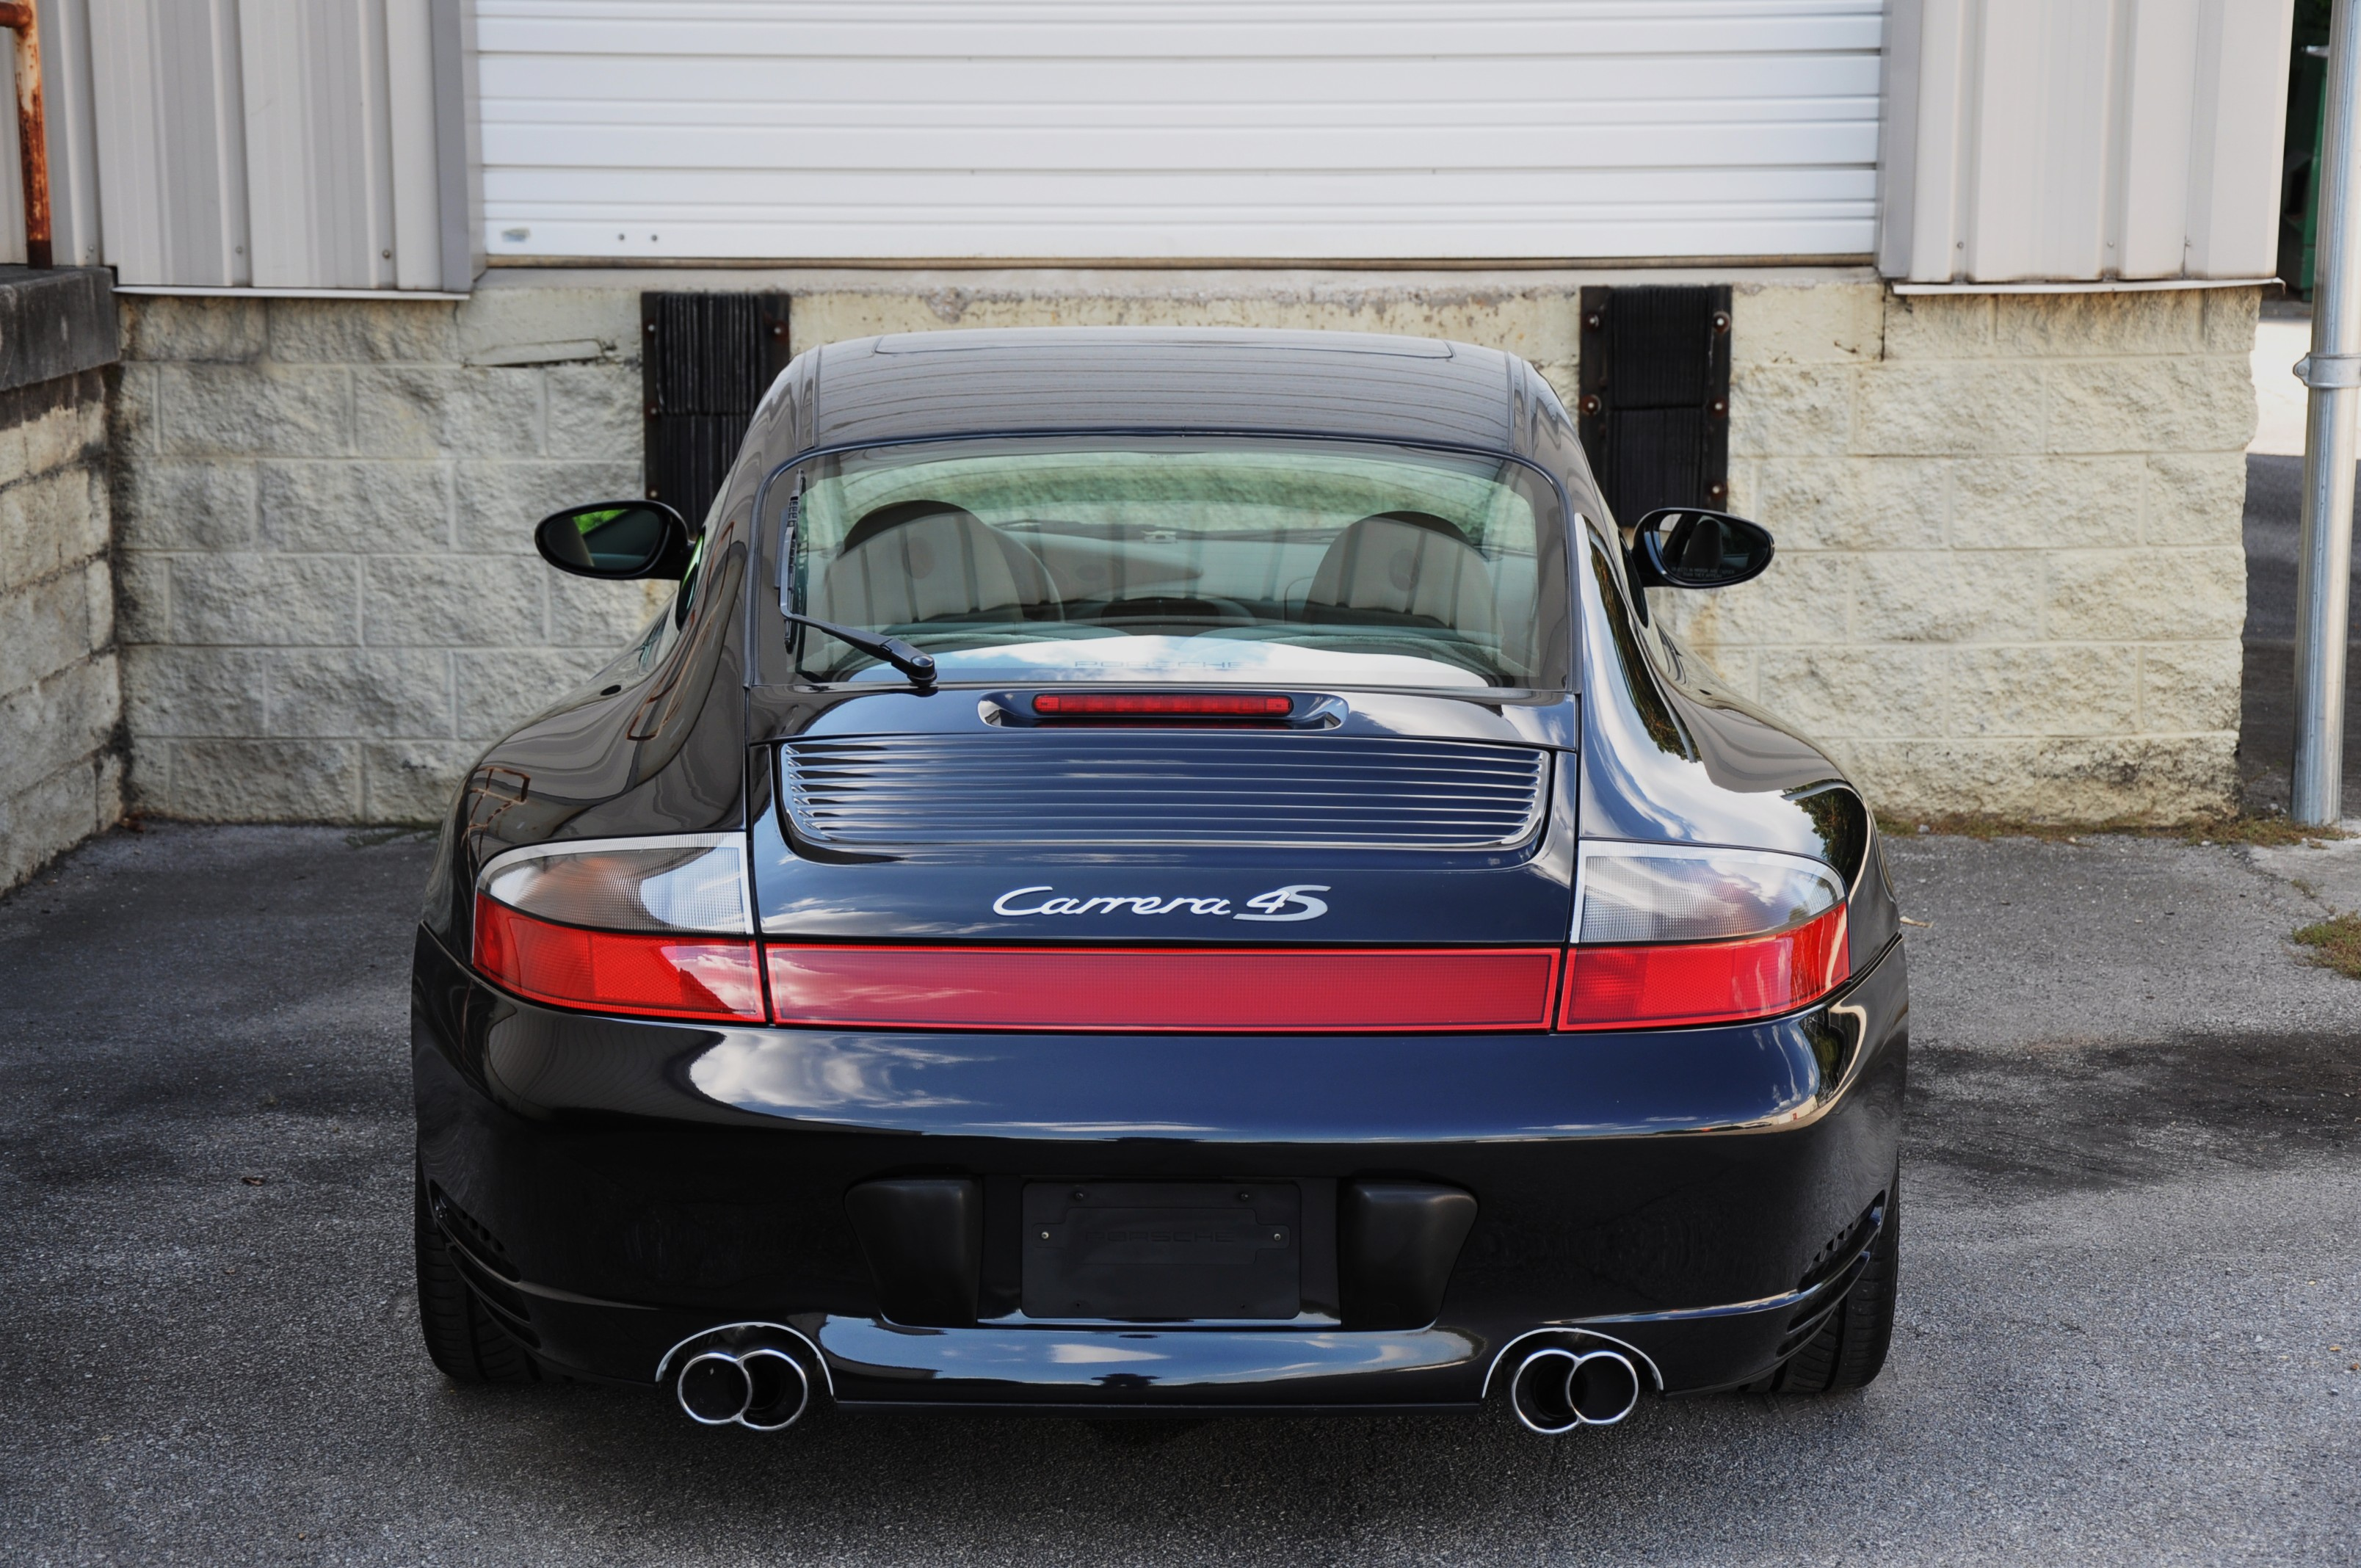 2004 Porsche 996 C4s 6 Speed Sold Motion Consulting